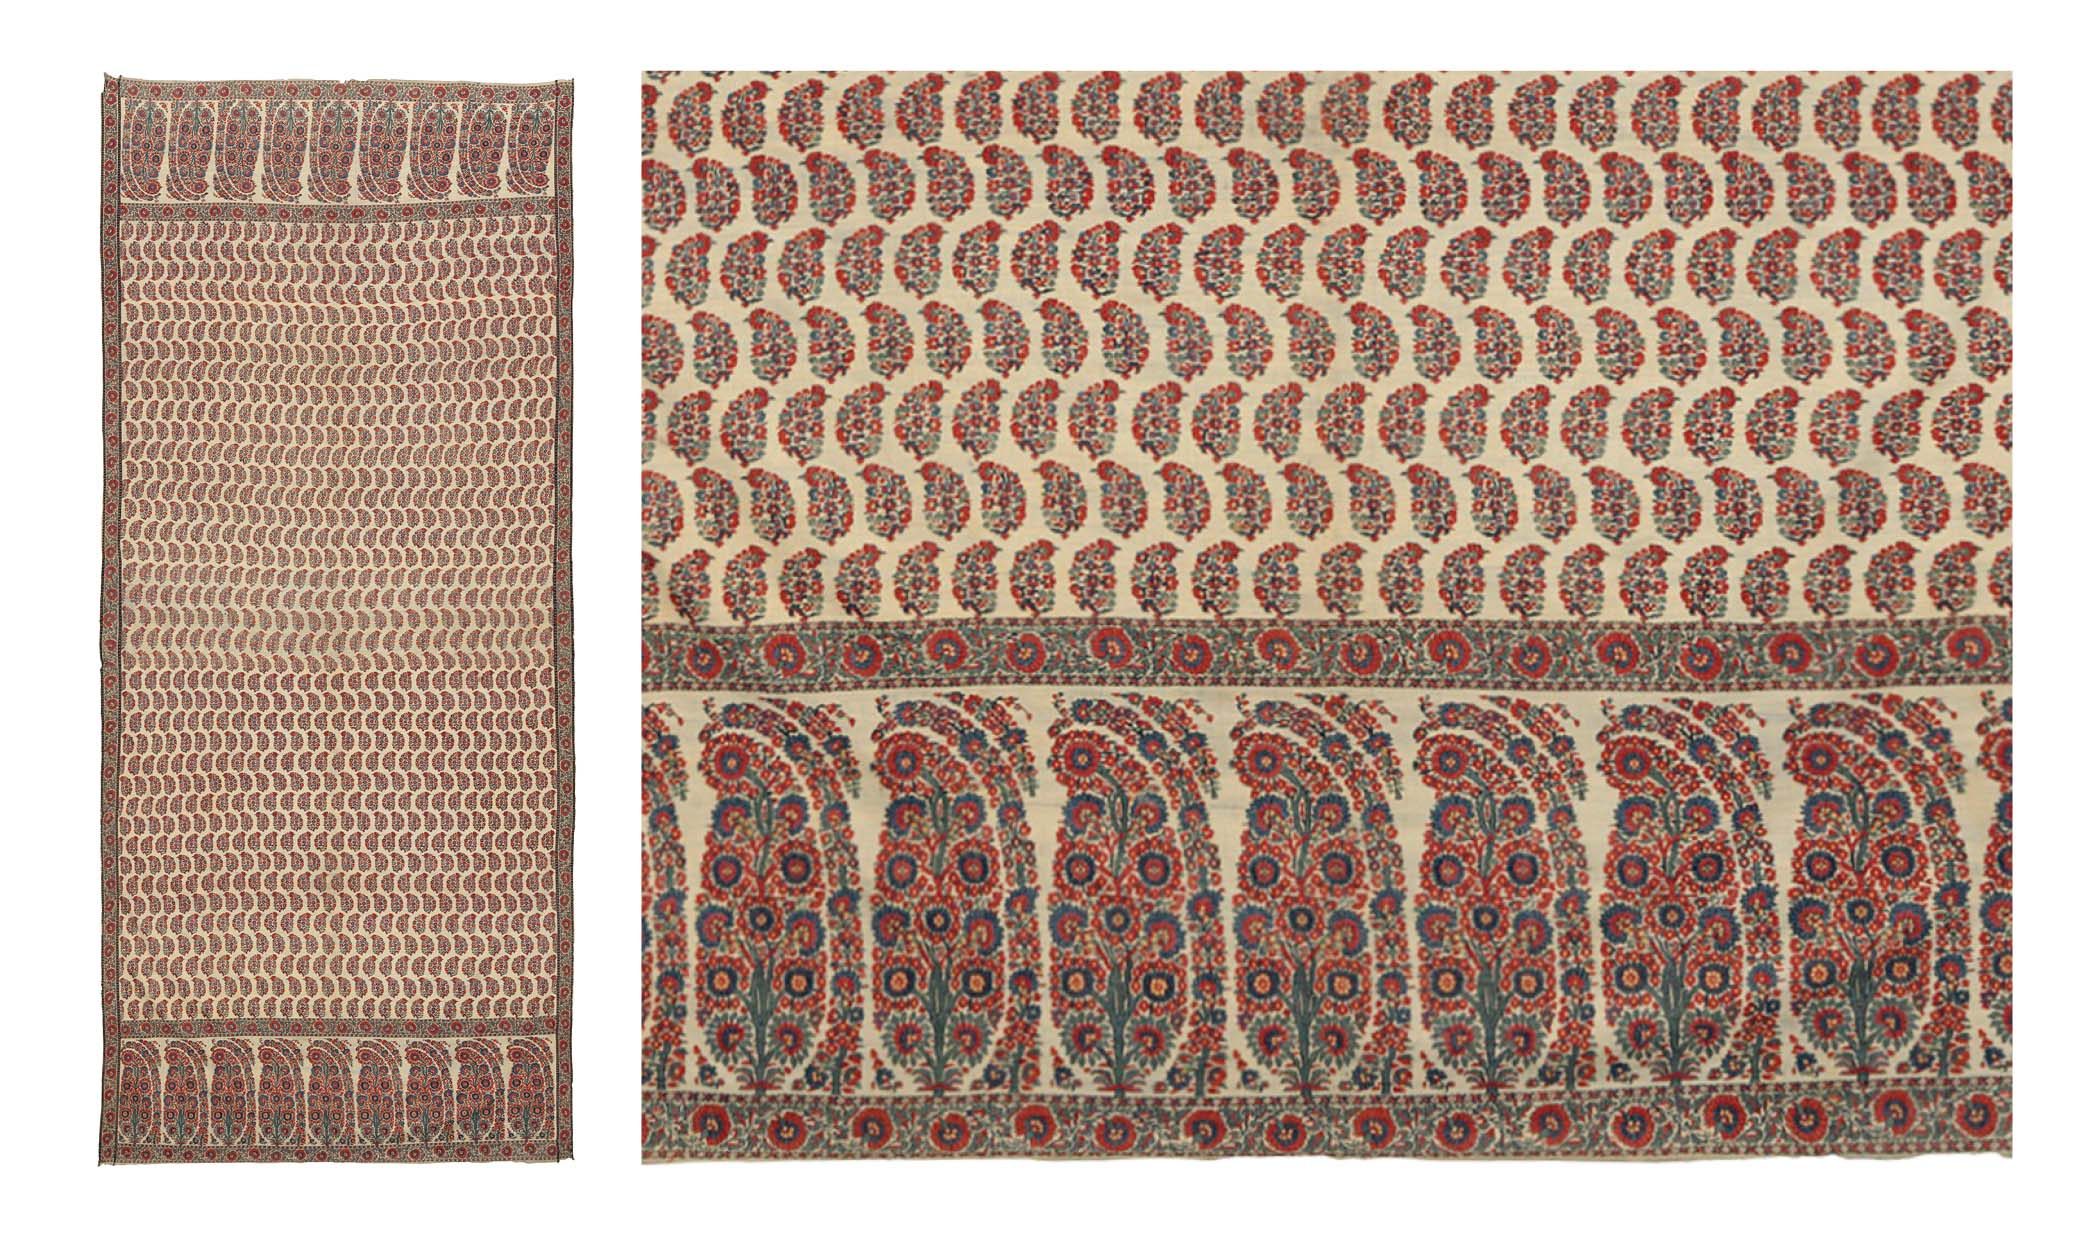 Lot 3: A LONG SHAWL OR GOWN PIECE (JAMAWAR). NORTH INDIA, CIRCA 1815. Estimate: GBP 6,000 - GBP 8,000. Price Realised: GBP 22,500